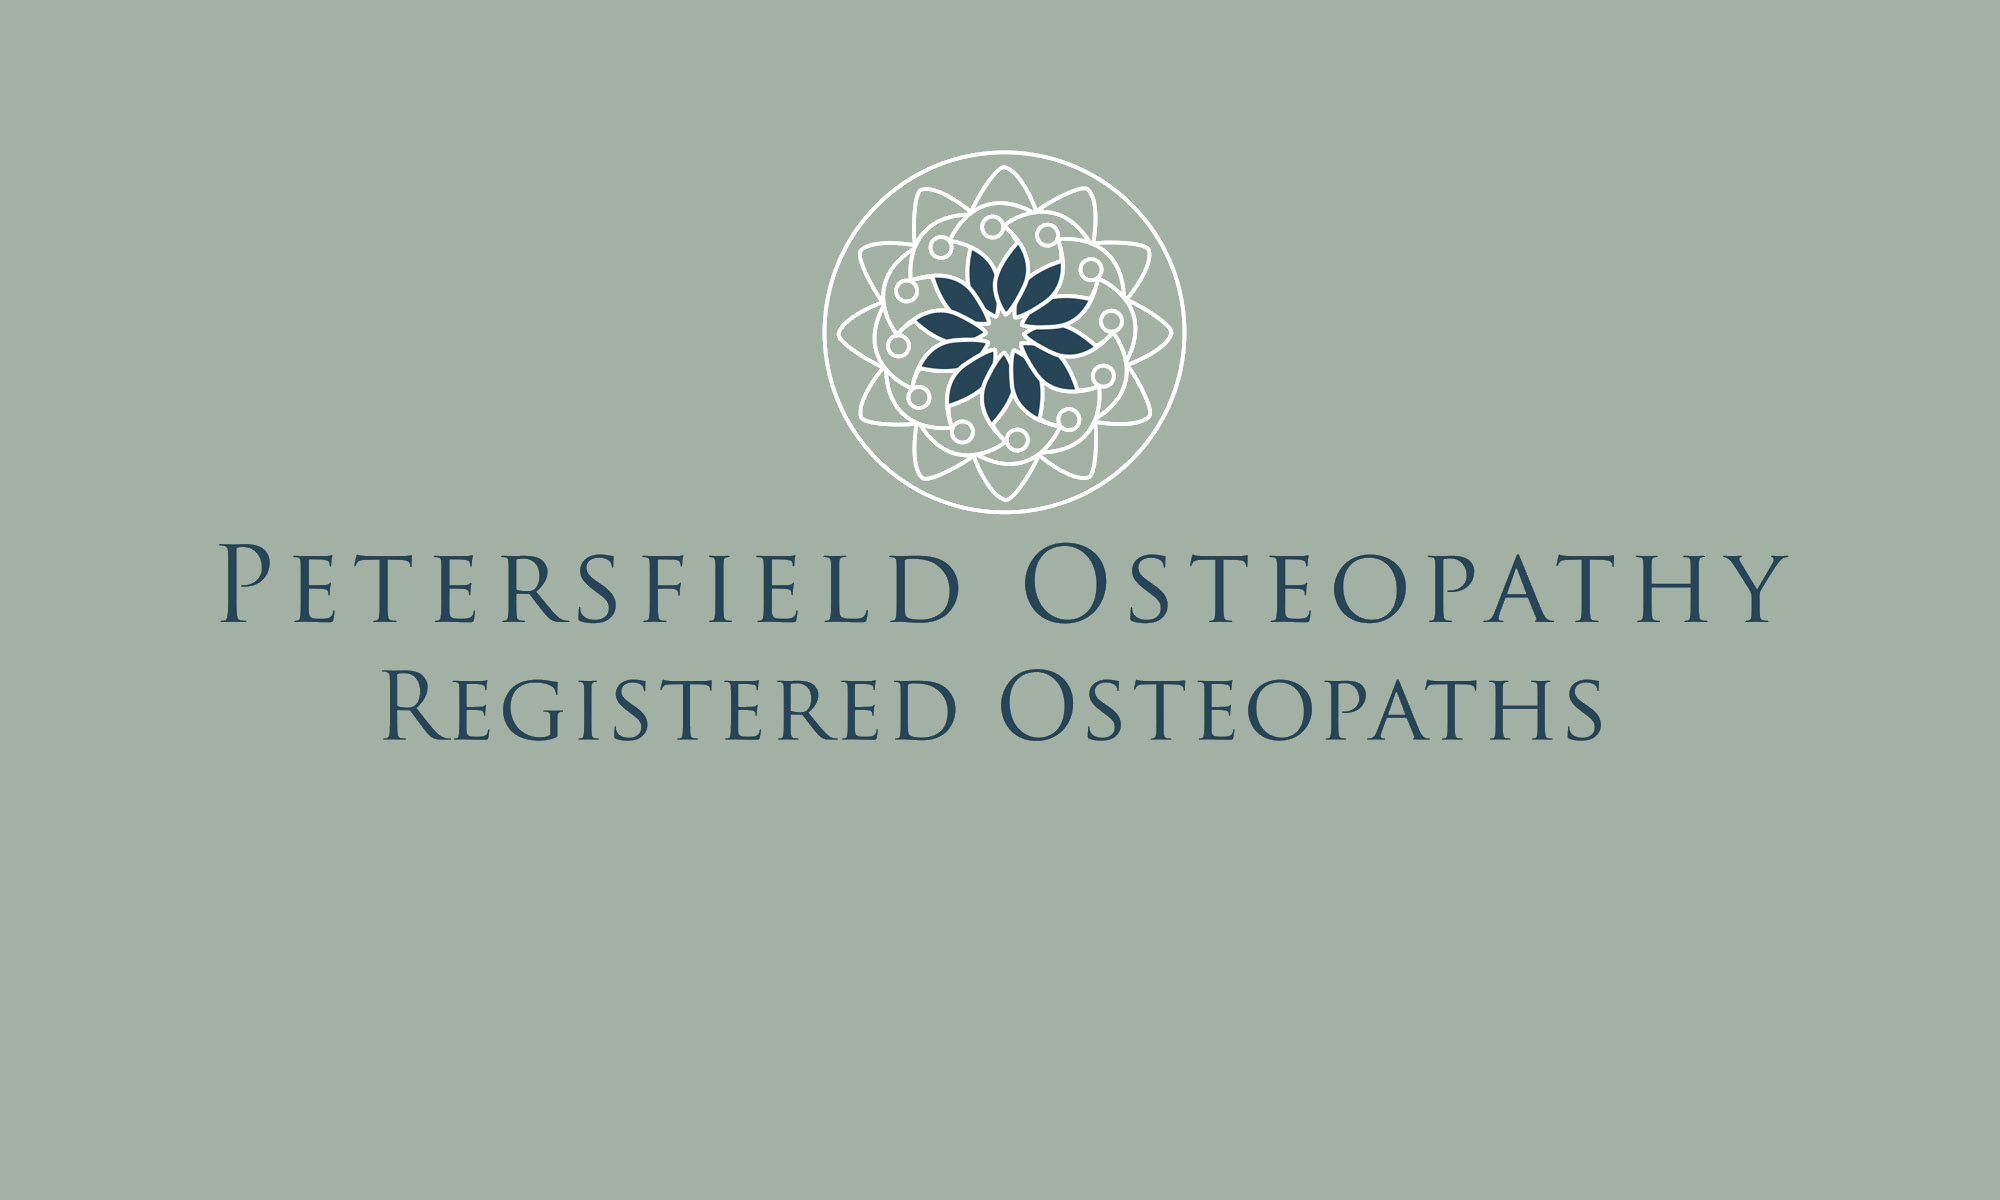 Petersfield Osteopathy